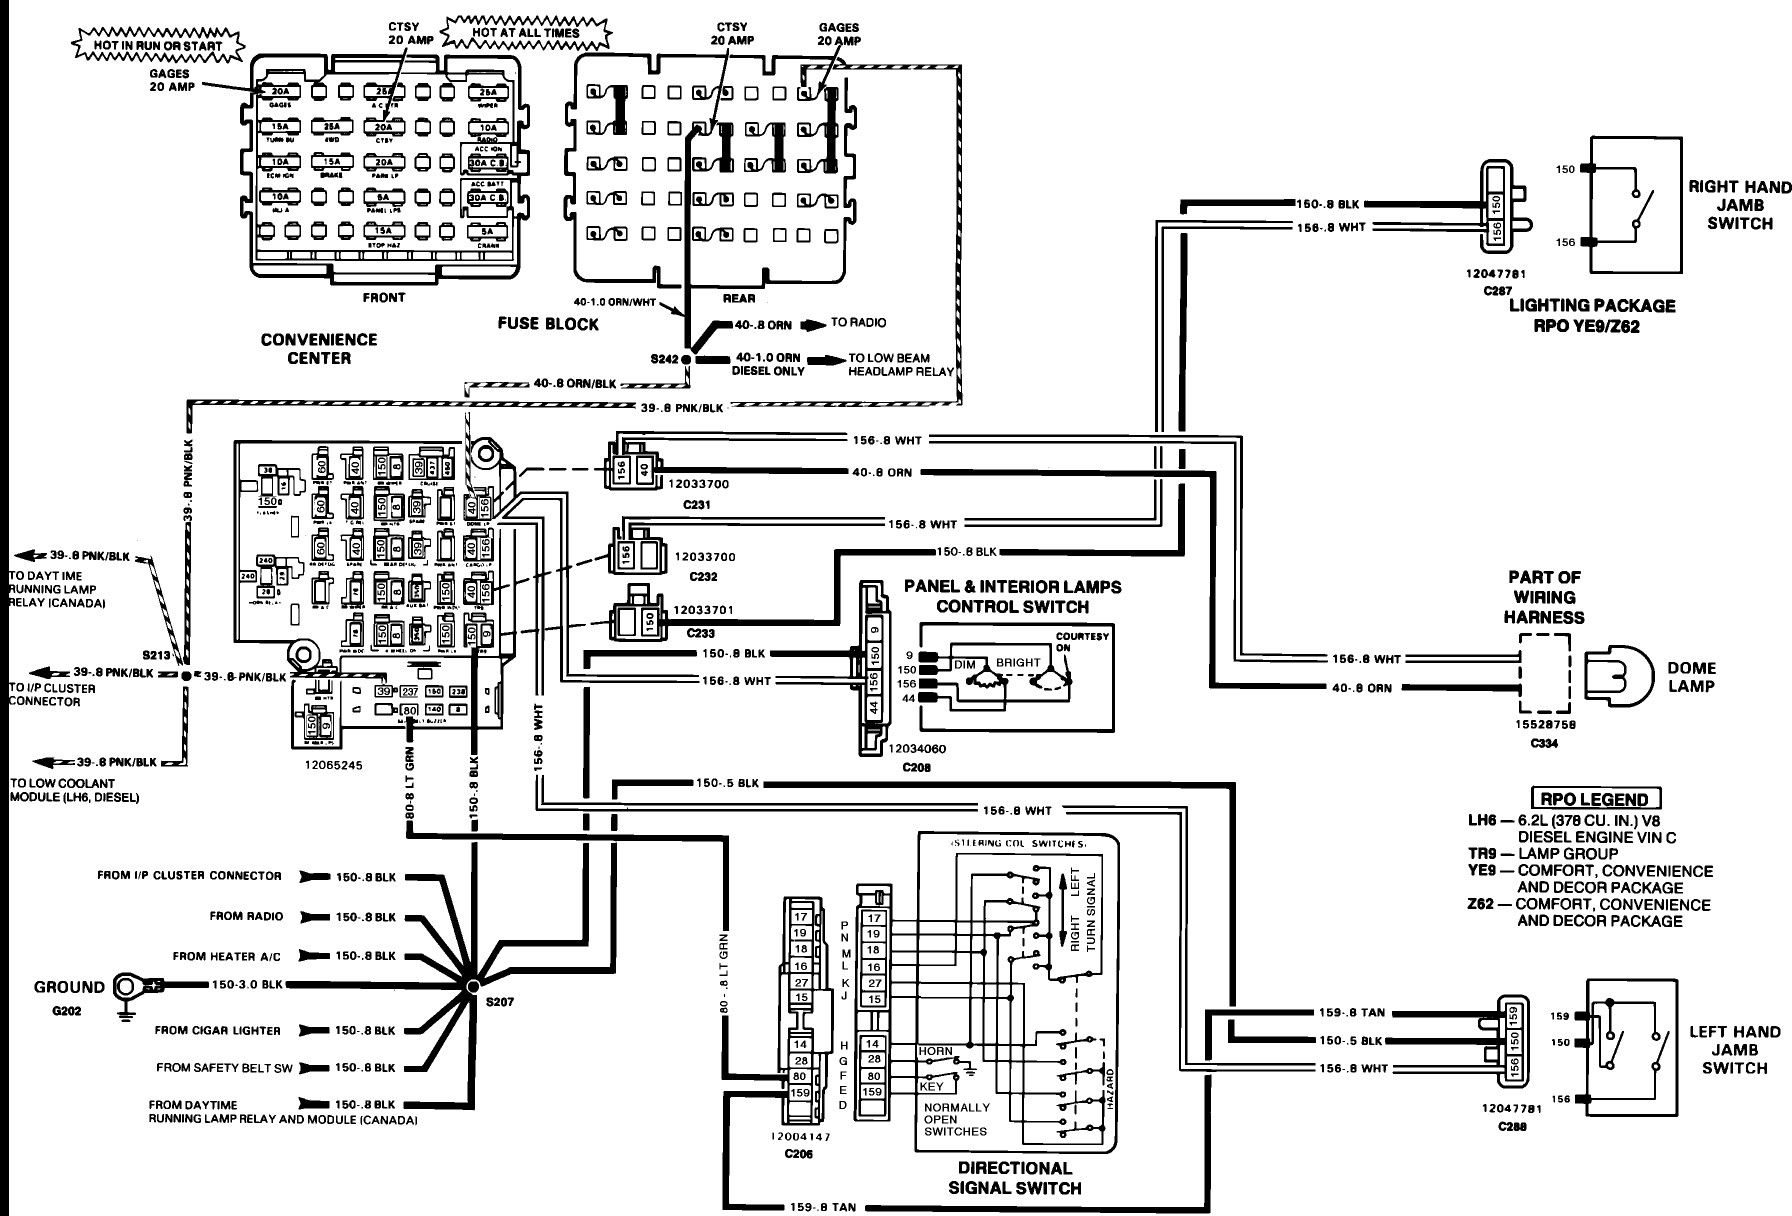 1993 chevy truck 4wd wiring diagram wiring diagram schema mix 1993 chevy truck 4wd wiring diagram [ 1792 x 1216 Pixel ]